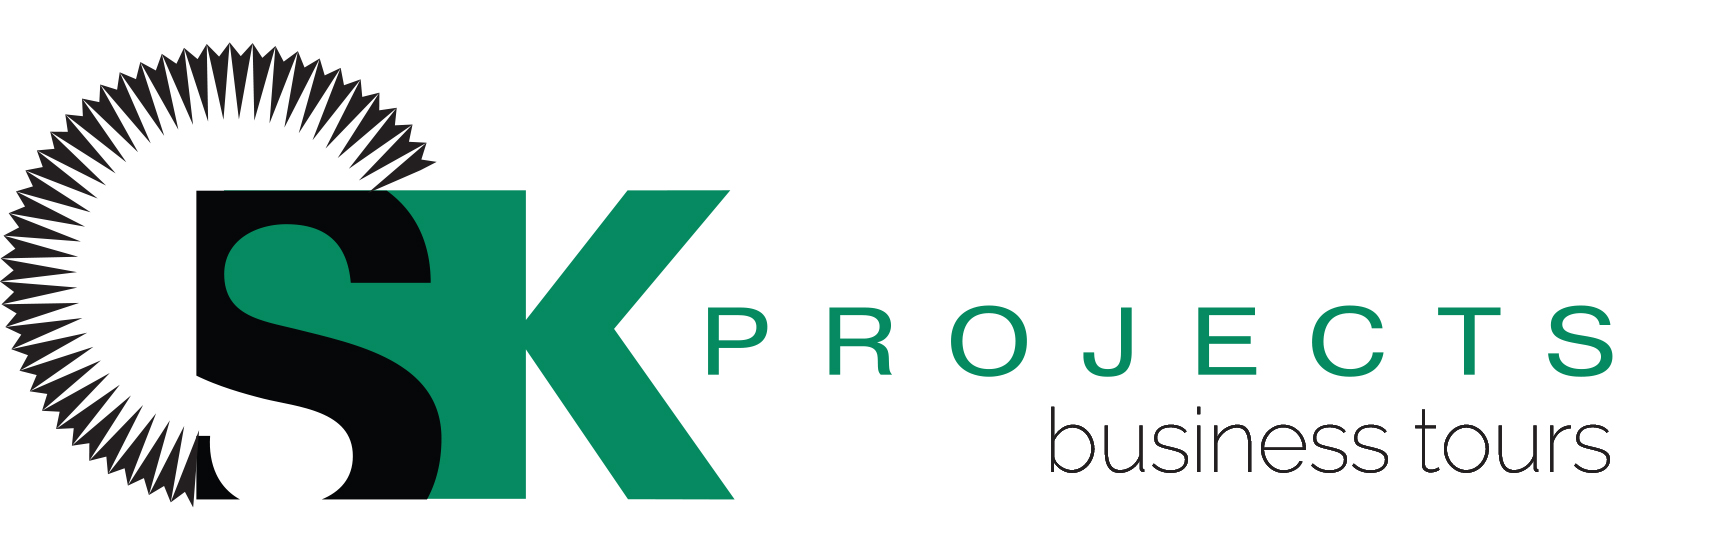 SK Projects Business Tours